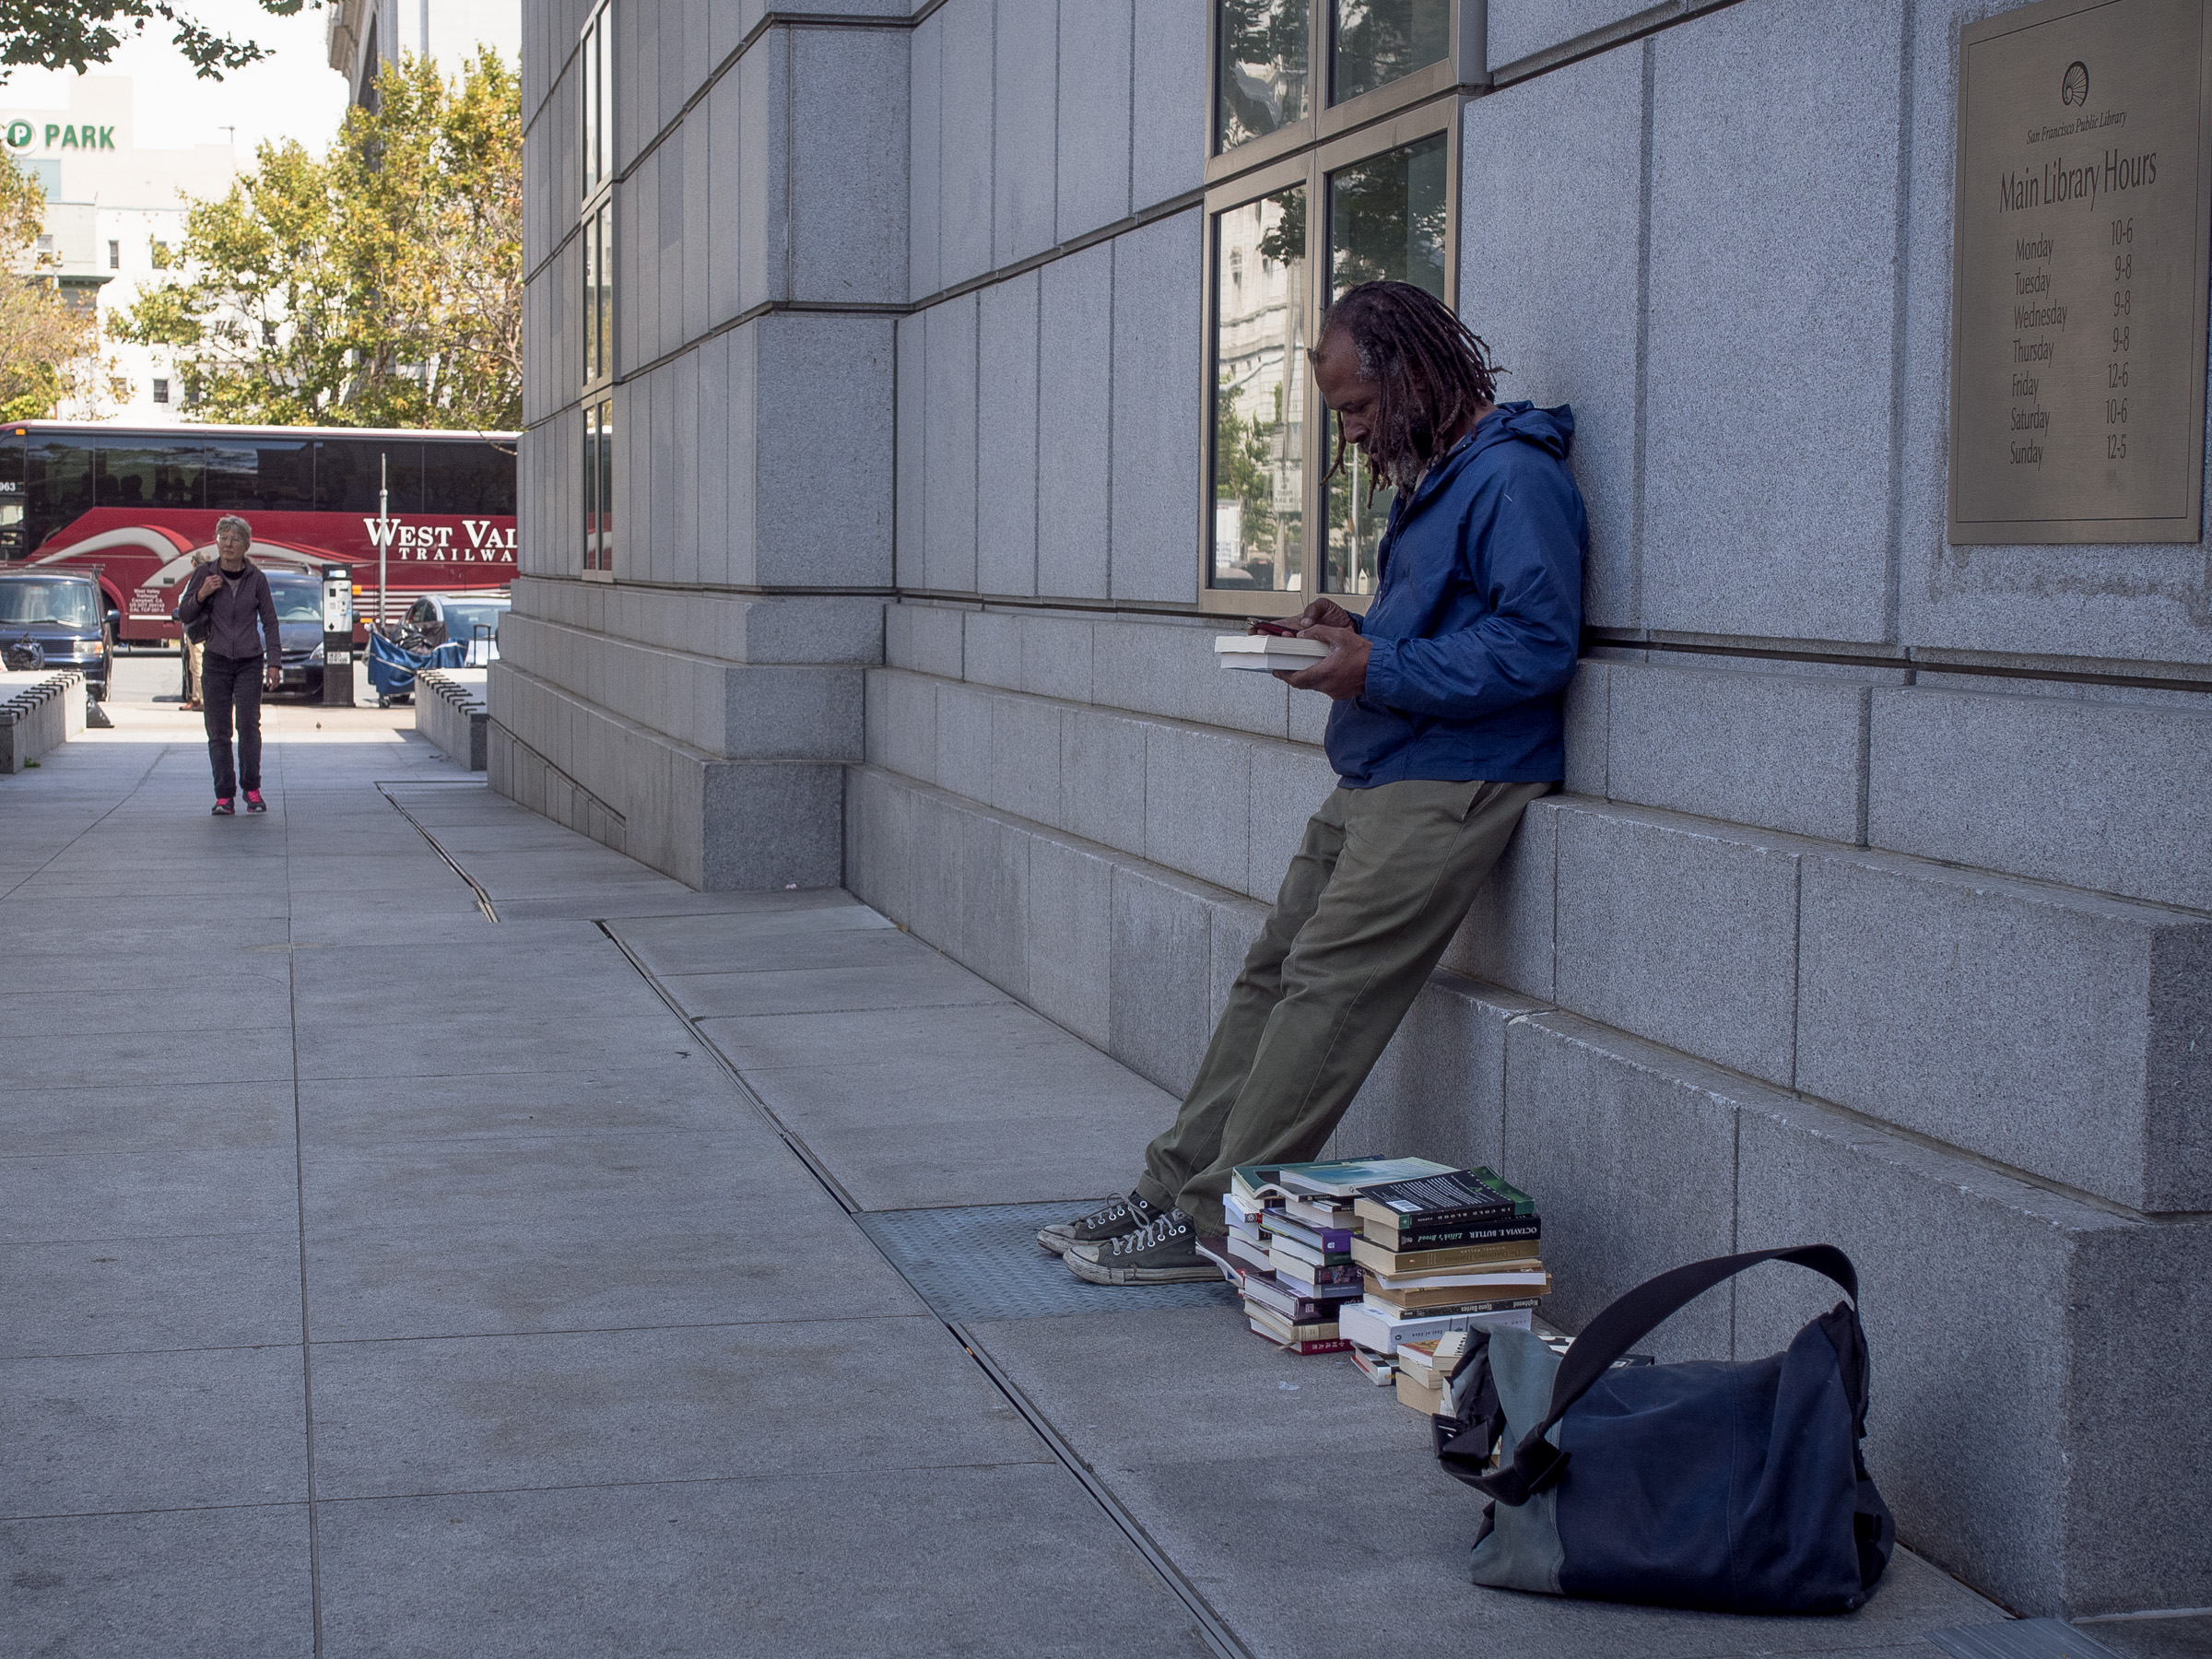 Book denizen checking out his spoils from the Dollar sale, 12:40pm